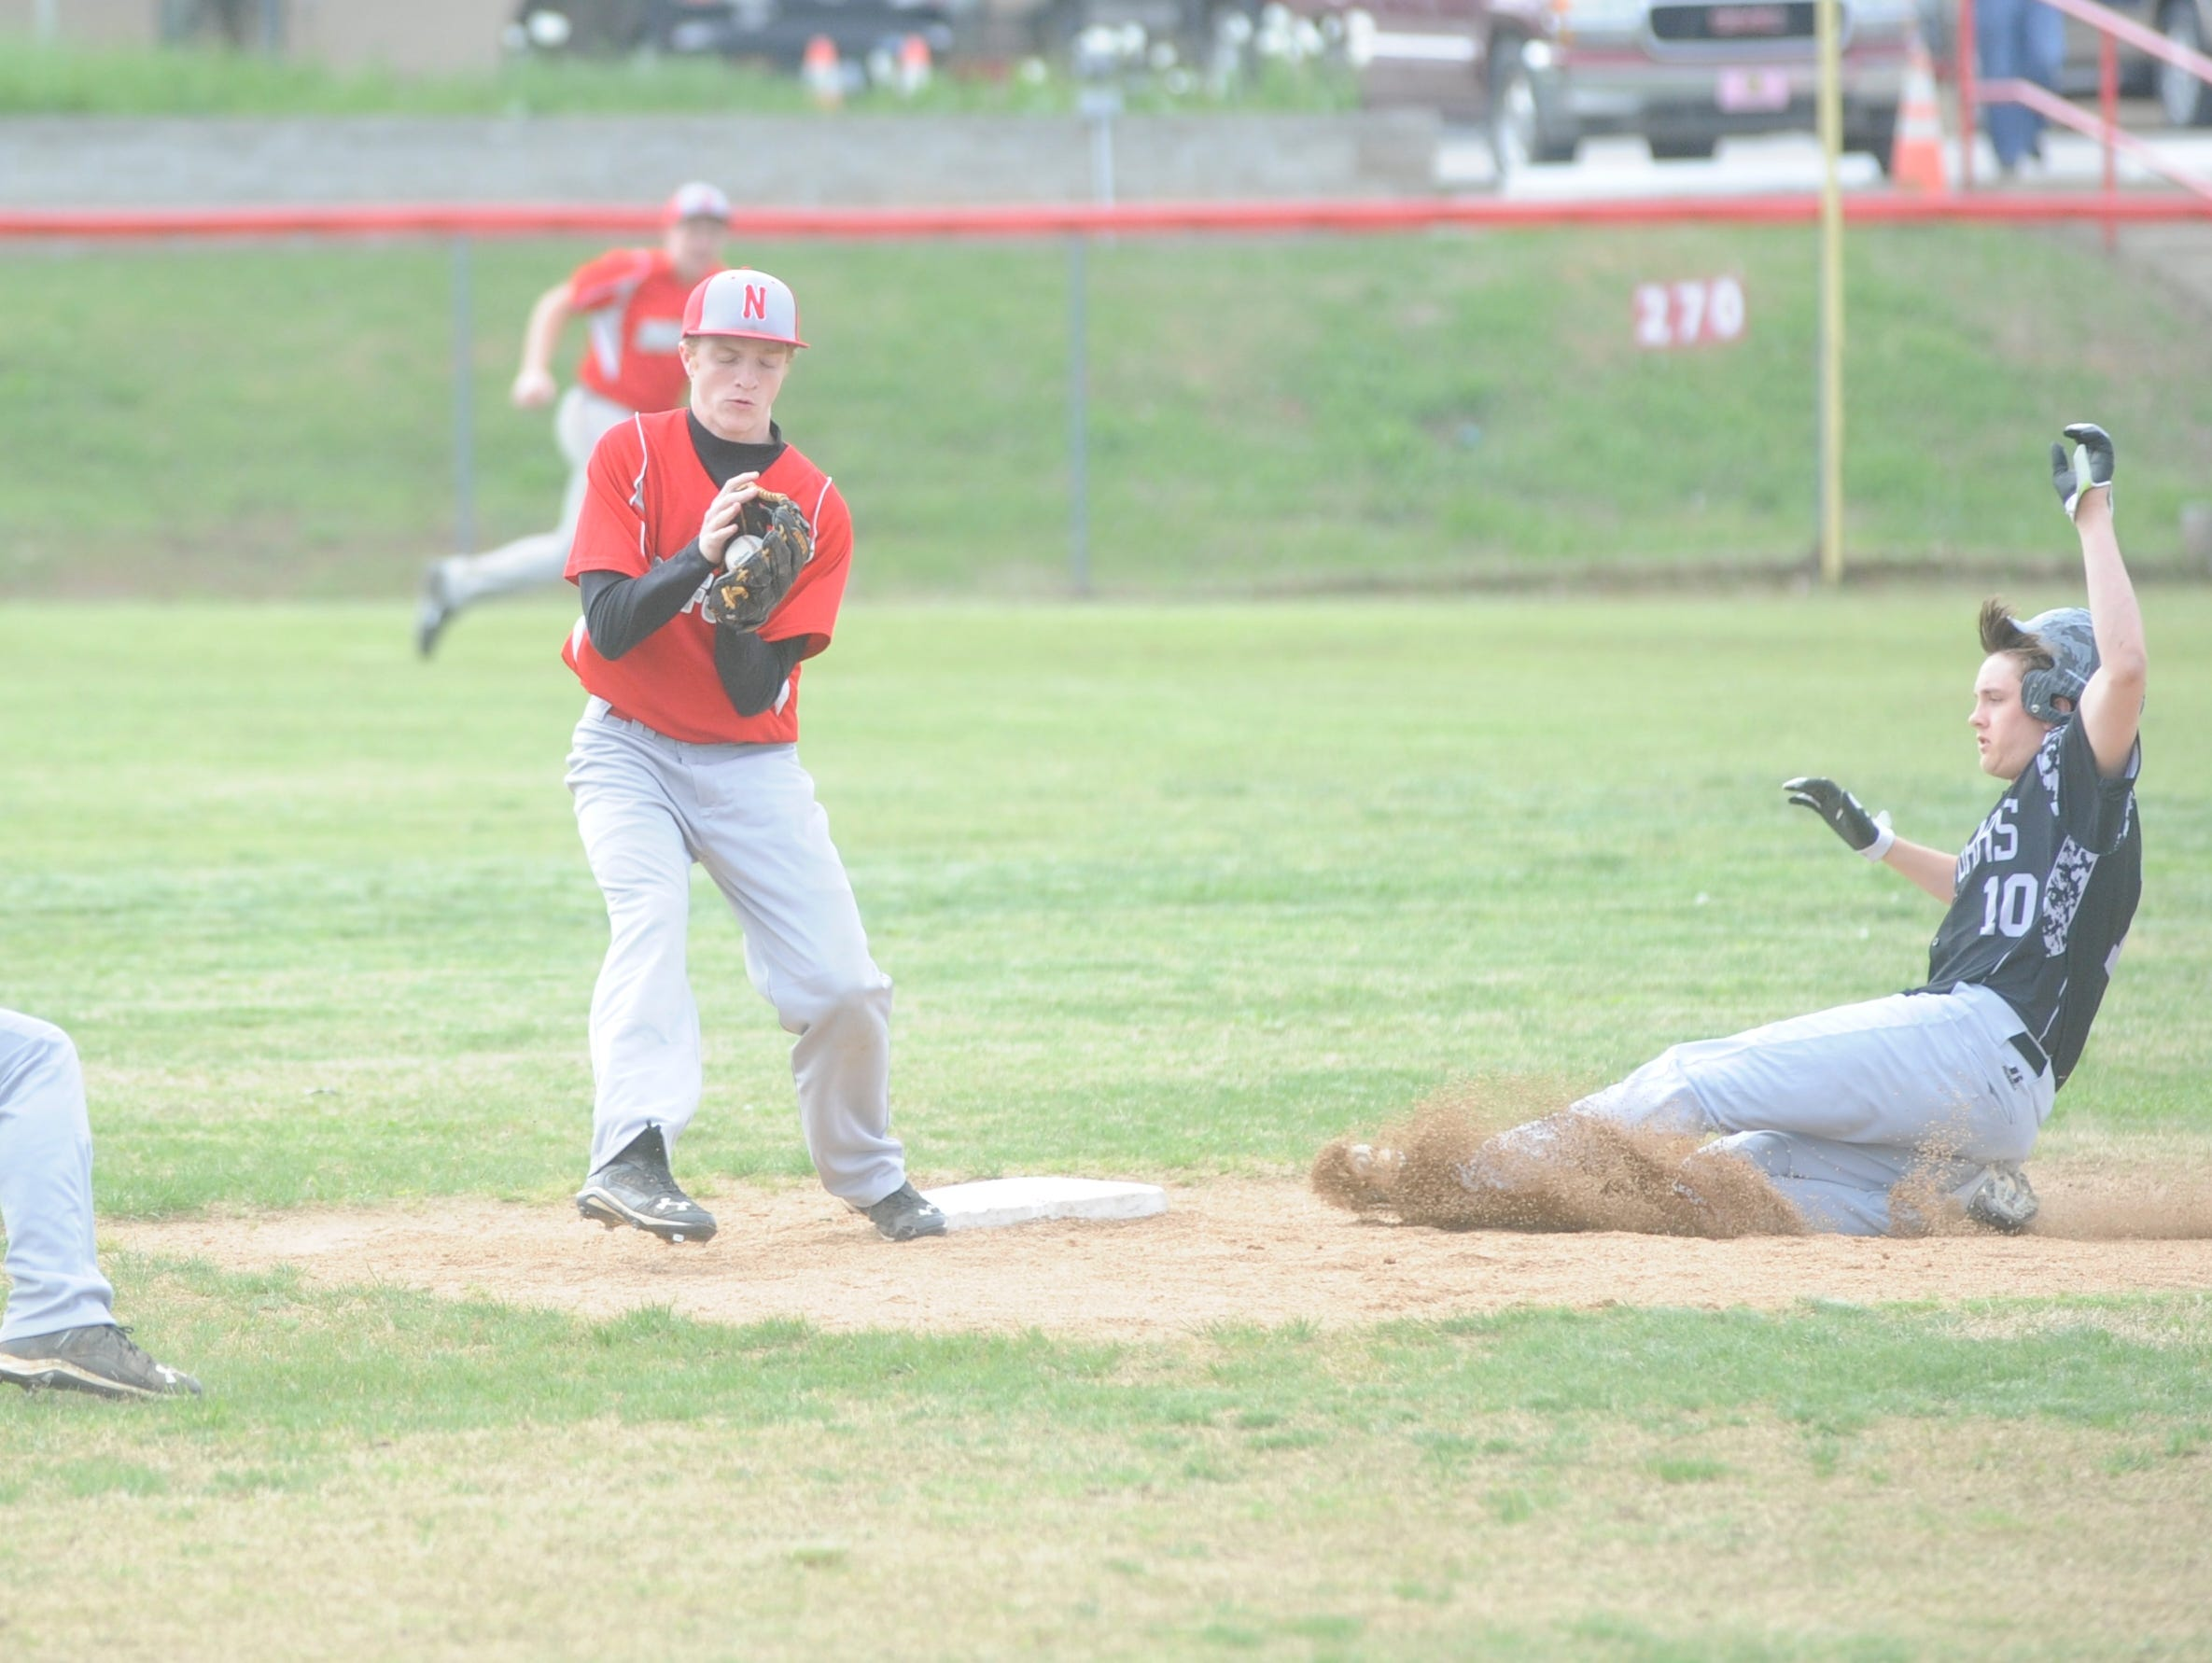 Norfork second baseman Grant Casey, middle, takes a throw from shortstop Quinn Ellison, left, for a force out as Izard County's Jake Everett slides into second base during the Panthers' 17-2 victory over the Cougars on Thursday at Fireball Reynolds Ballfield.